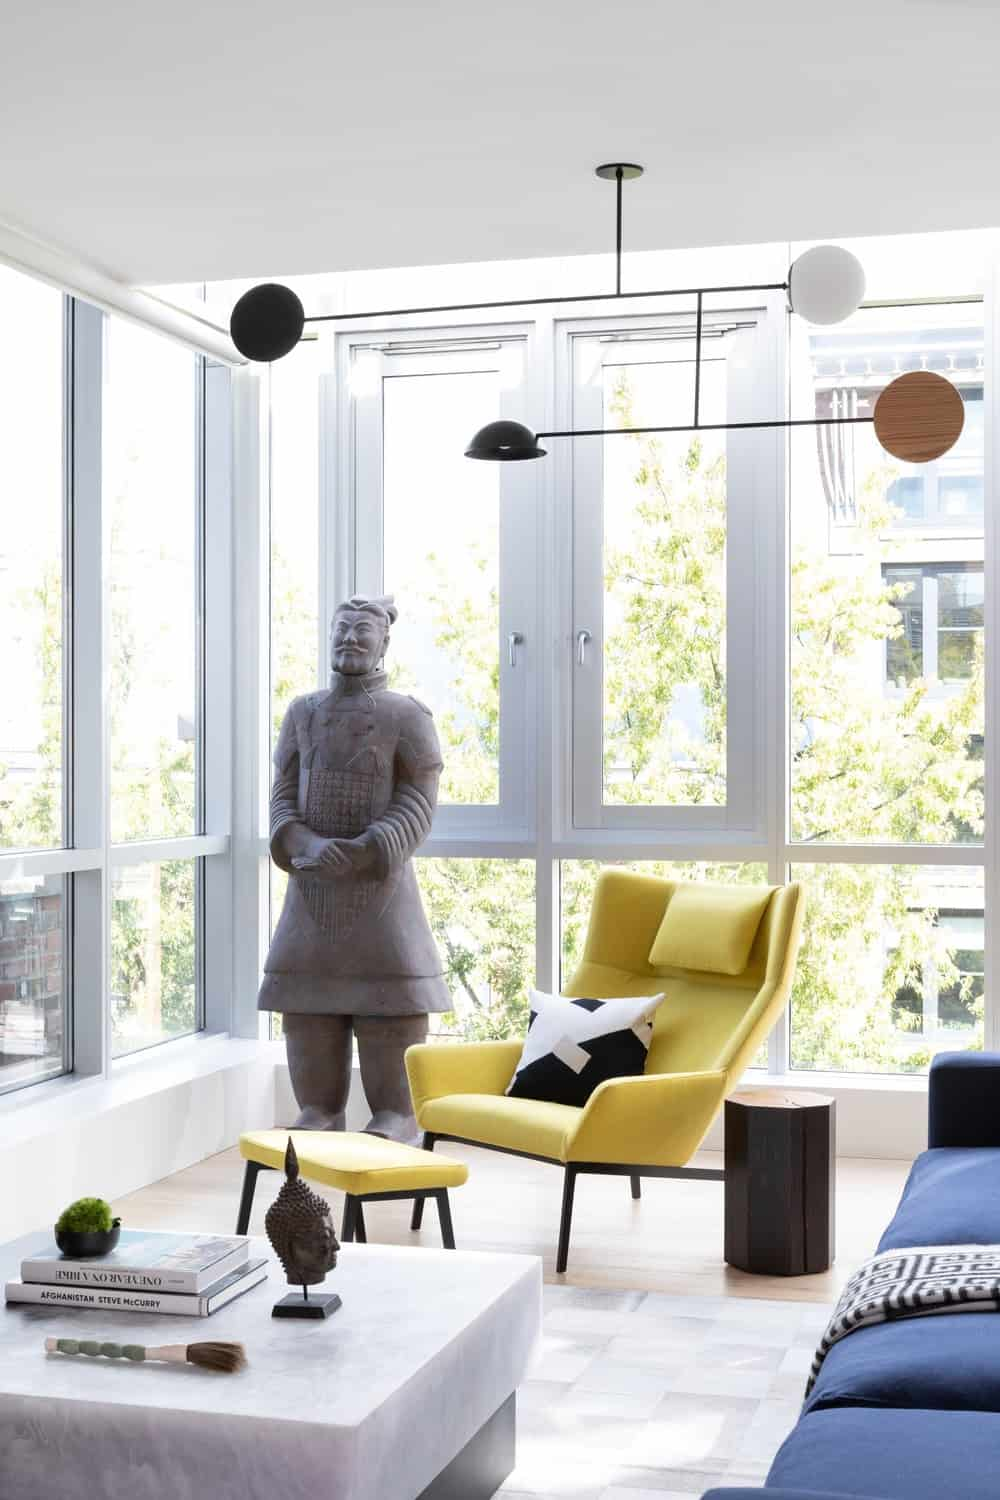 This is a closer look at the bright corner of the living room adorned with a life-size stone statue illuminated by the surrounding glass walls and ceiling. This also makes the modern lighting stand out along with the yellow armchair with a matching footstool.